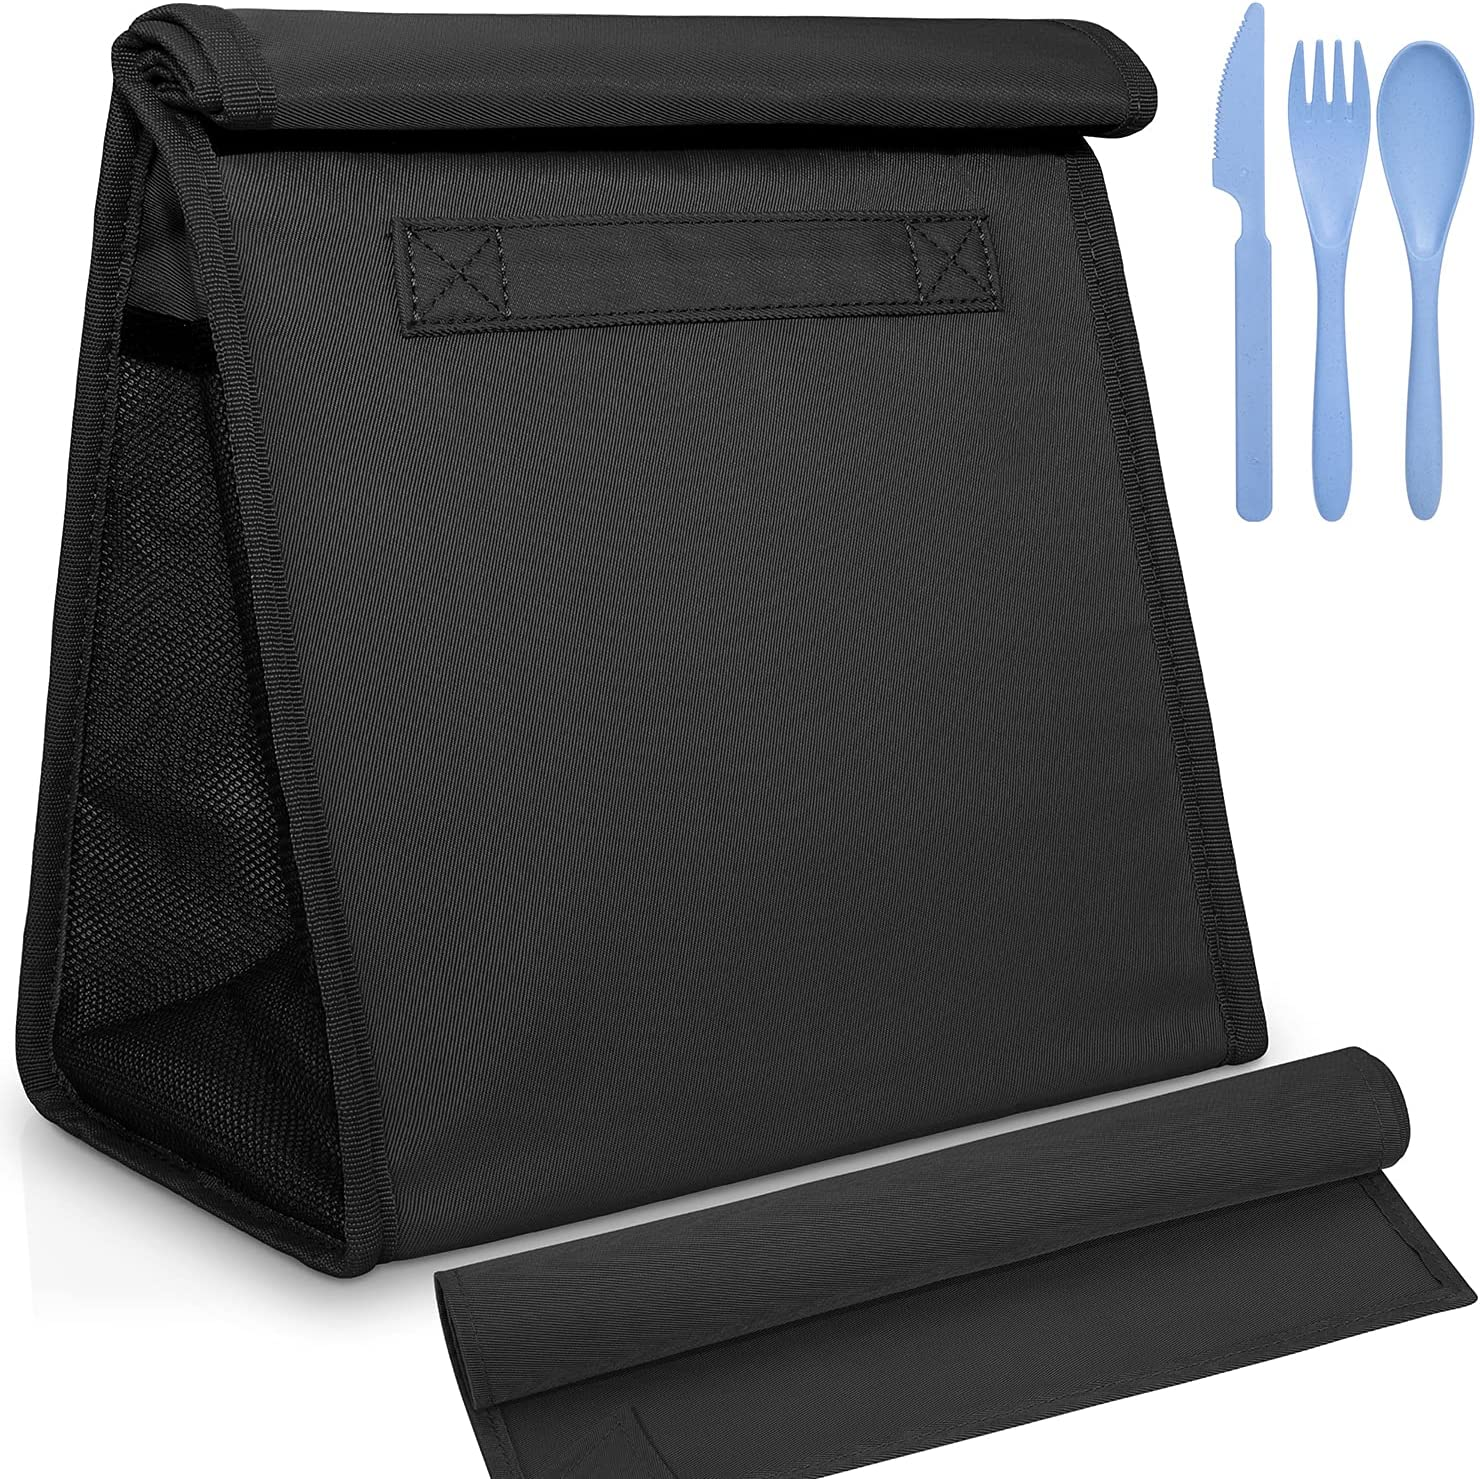 Reusable Lunch Sack Bag with Extra Storage Pockets, Knife, fork, spoon and Washable Napkin, Large Capacity Foldable Insulated Lunch Bag Tote for for Men, Women, Office, School,Picnic, Hiking (Black)